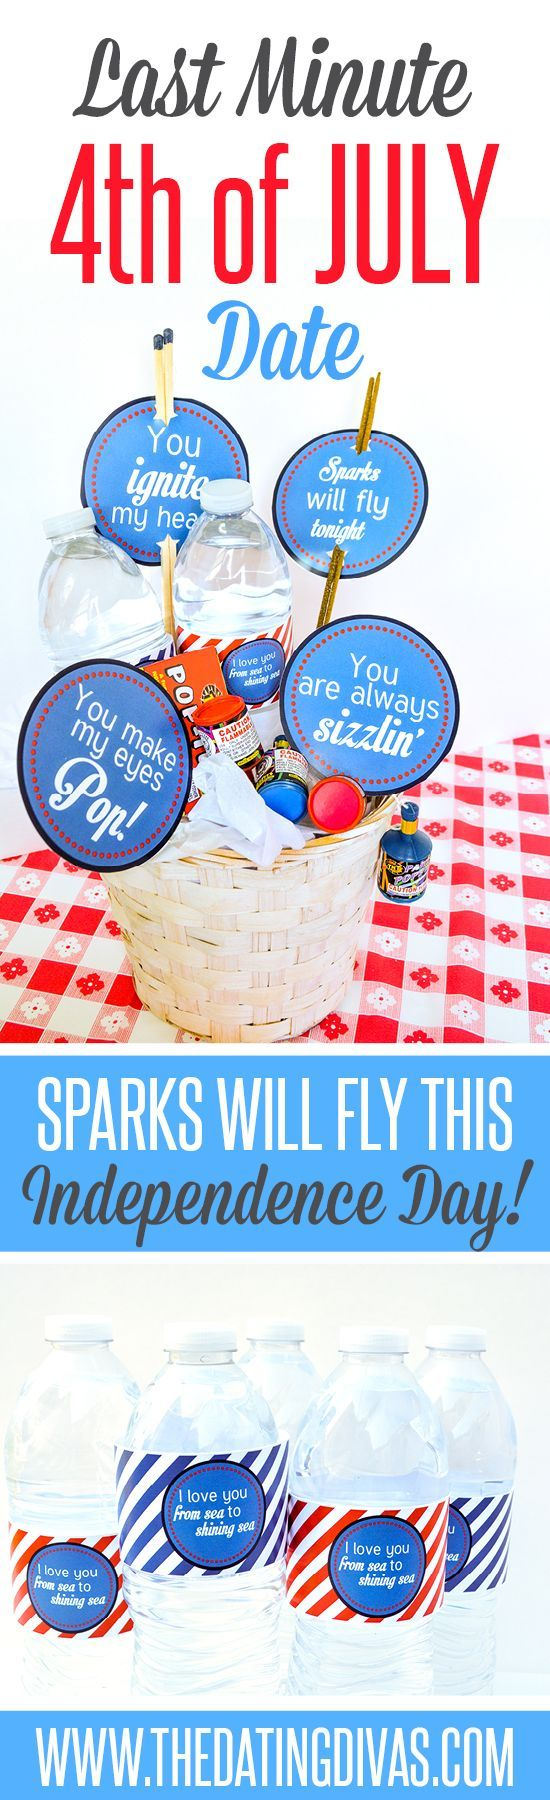 846 best Fourth of July Party images on Pinterest | July crafts ...